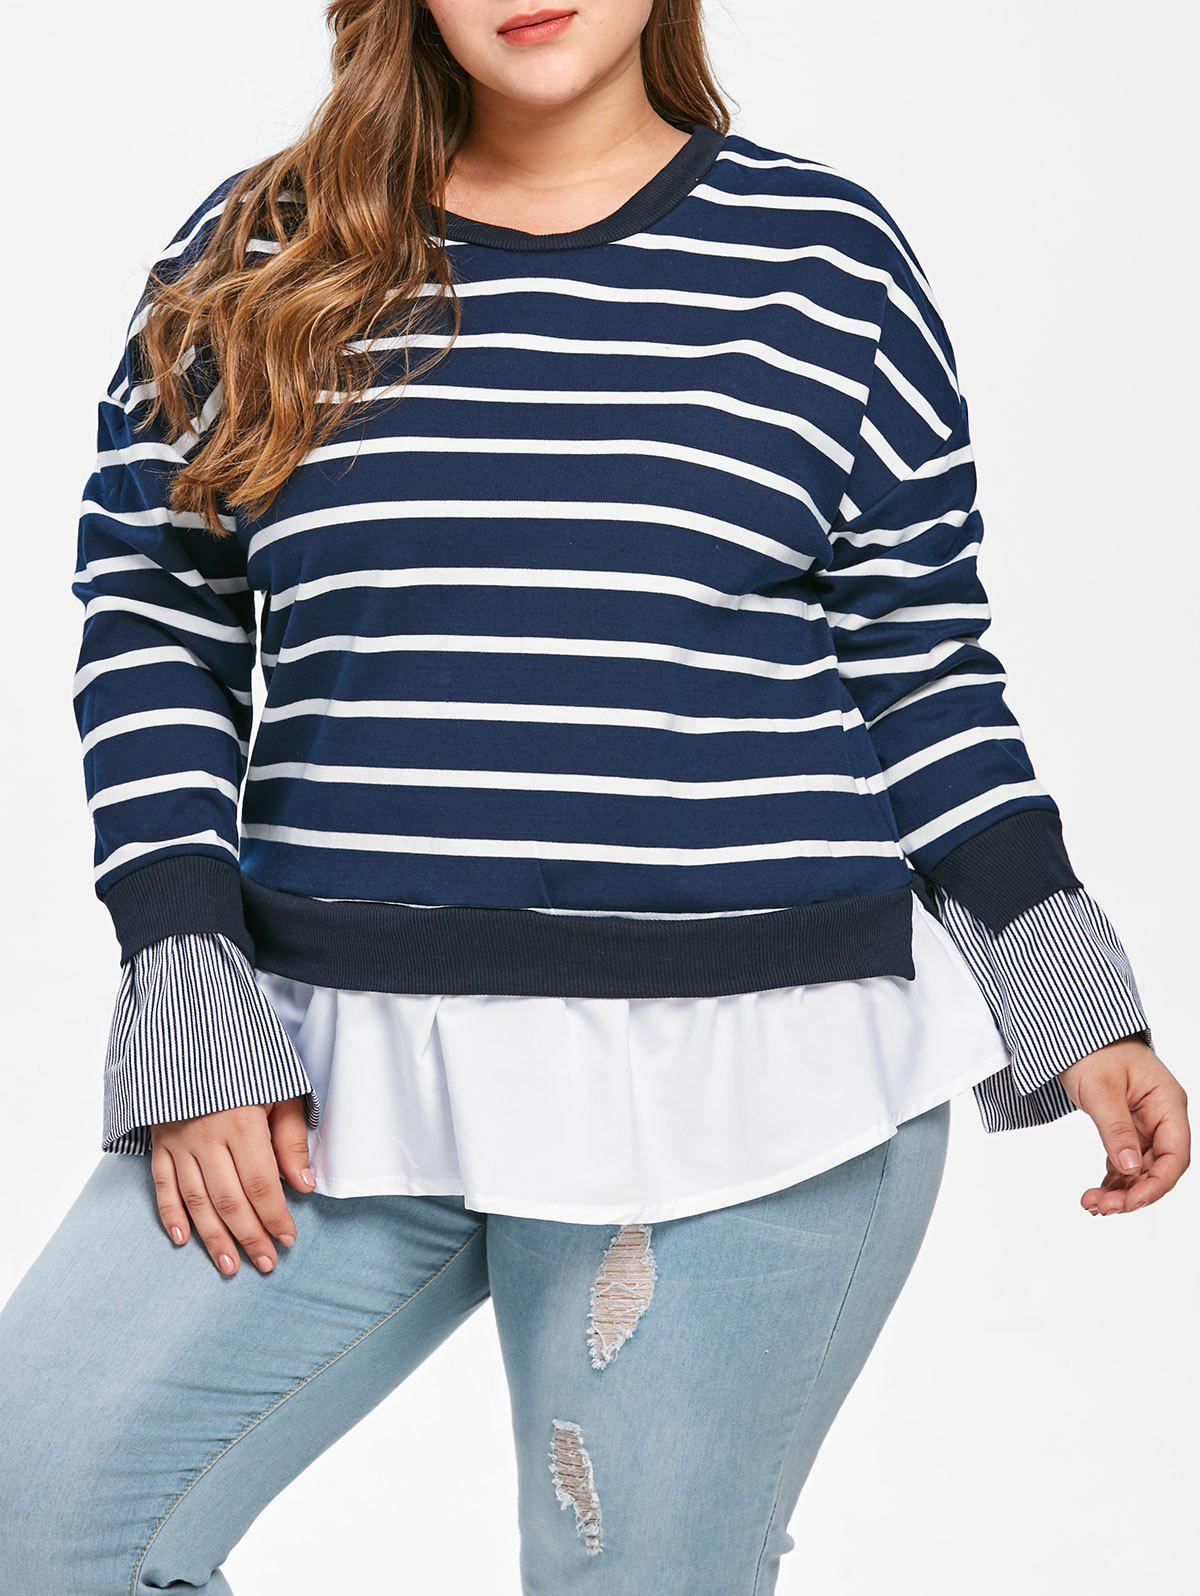 Drop Shoulder Plus Size Striped T-shirt - DARK SLATE BLUE 4X